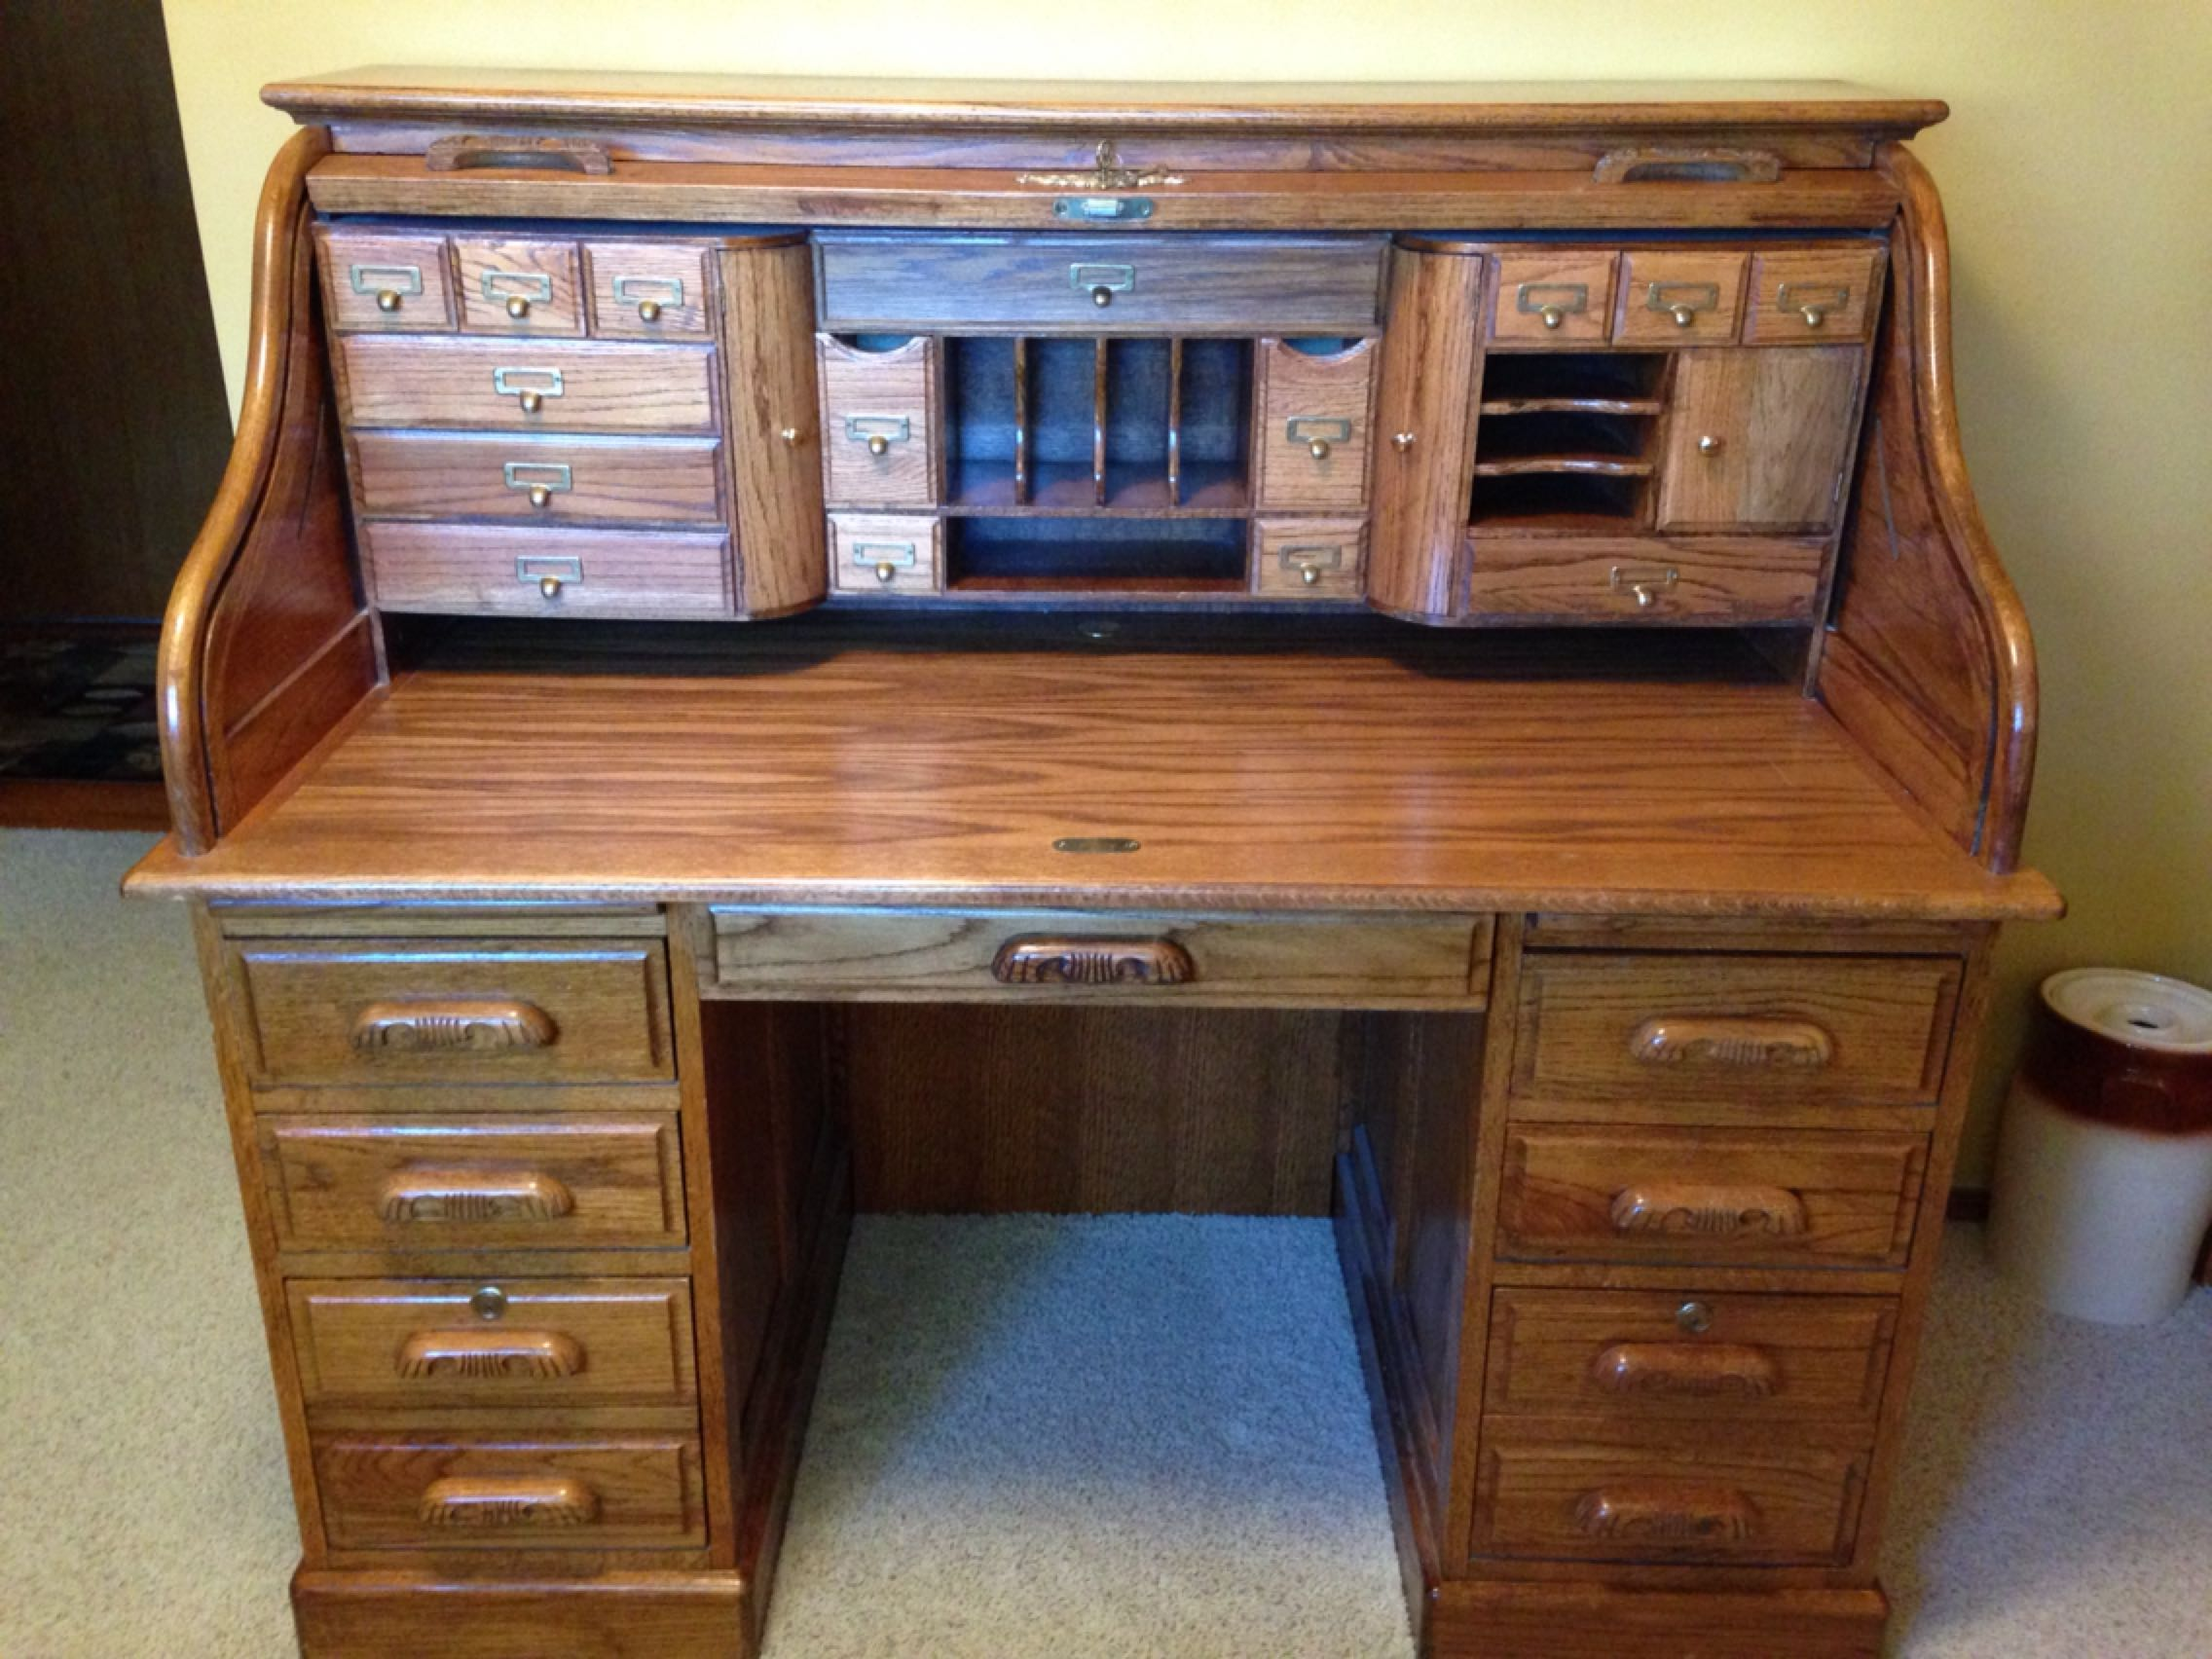 Top Find more Oak Roll Top Desk With Key, Lots Of Storage, Cubby Holes  CT09